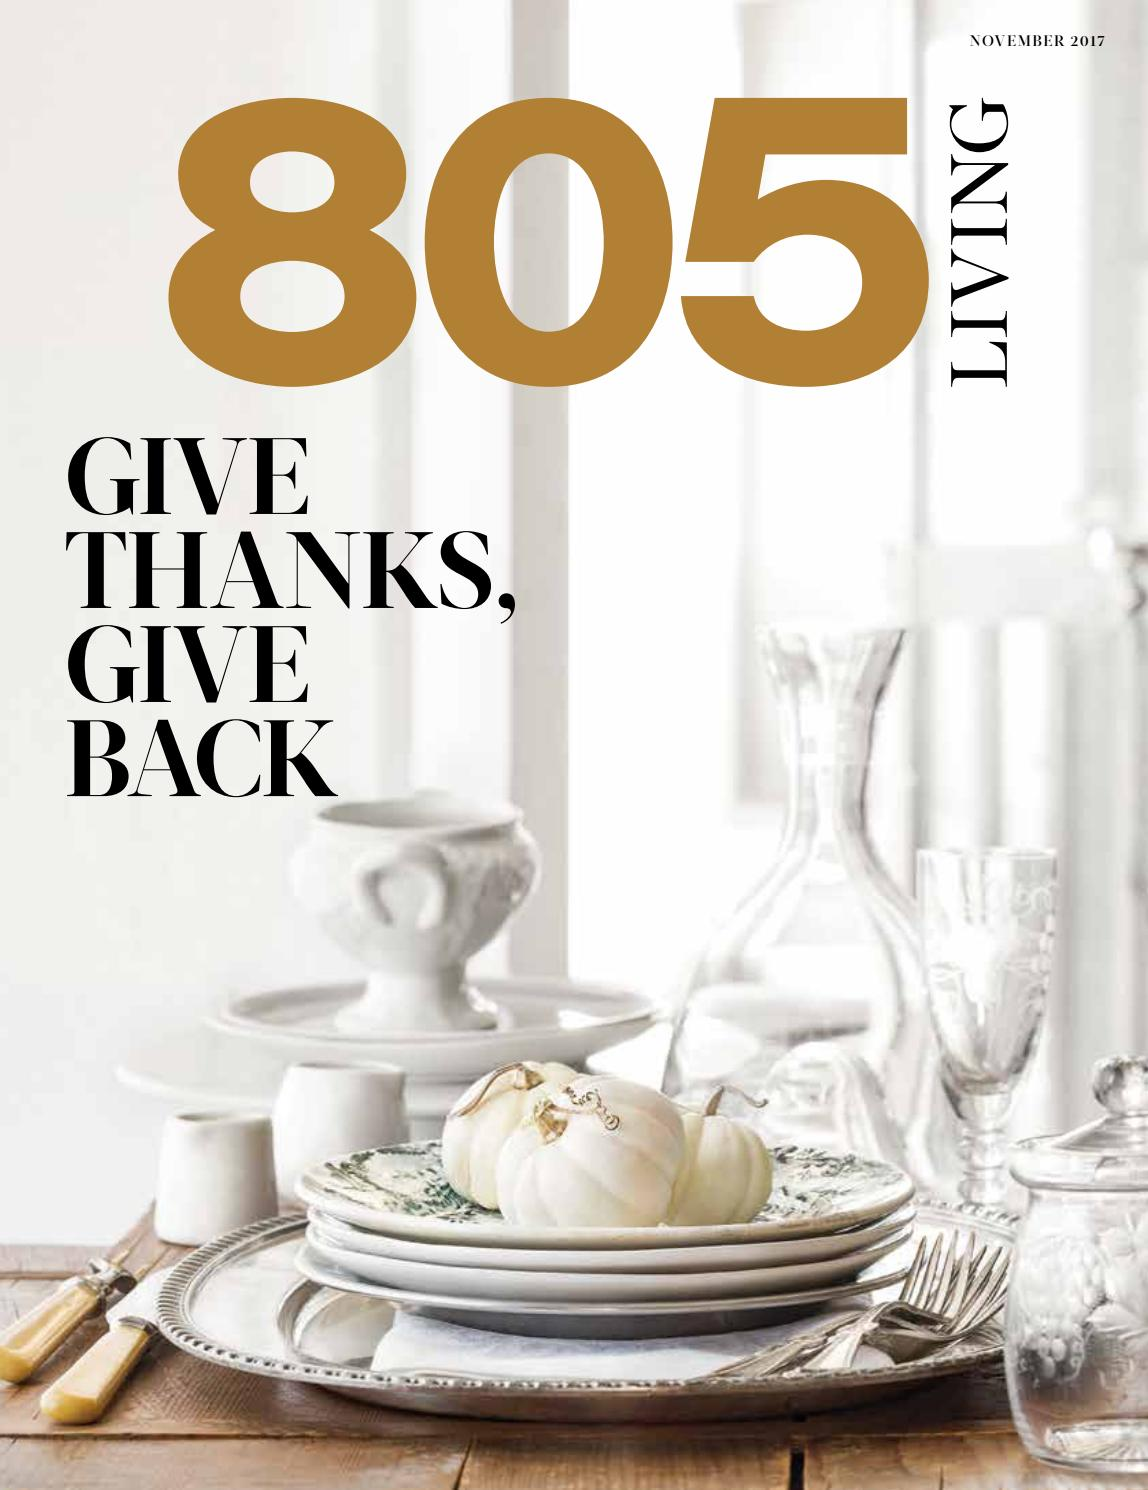 805 Living November 2017 by 805 Living - issuu